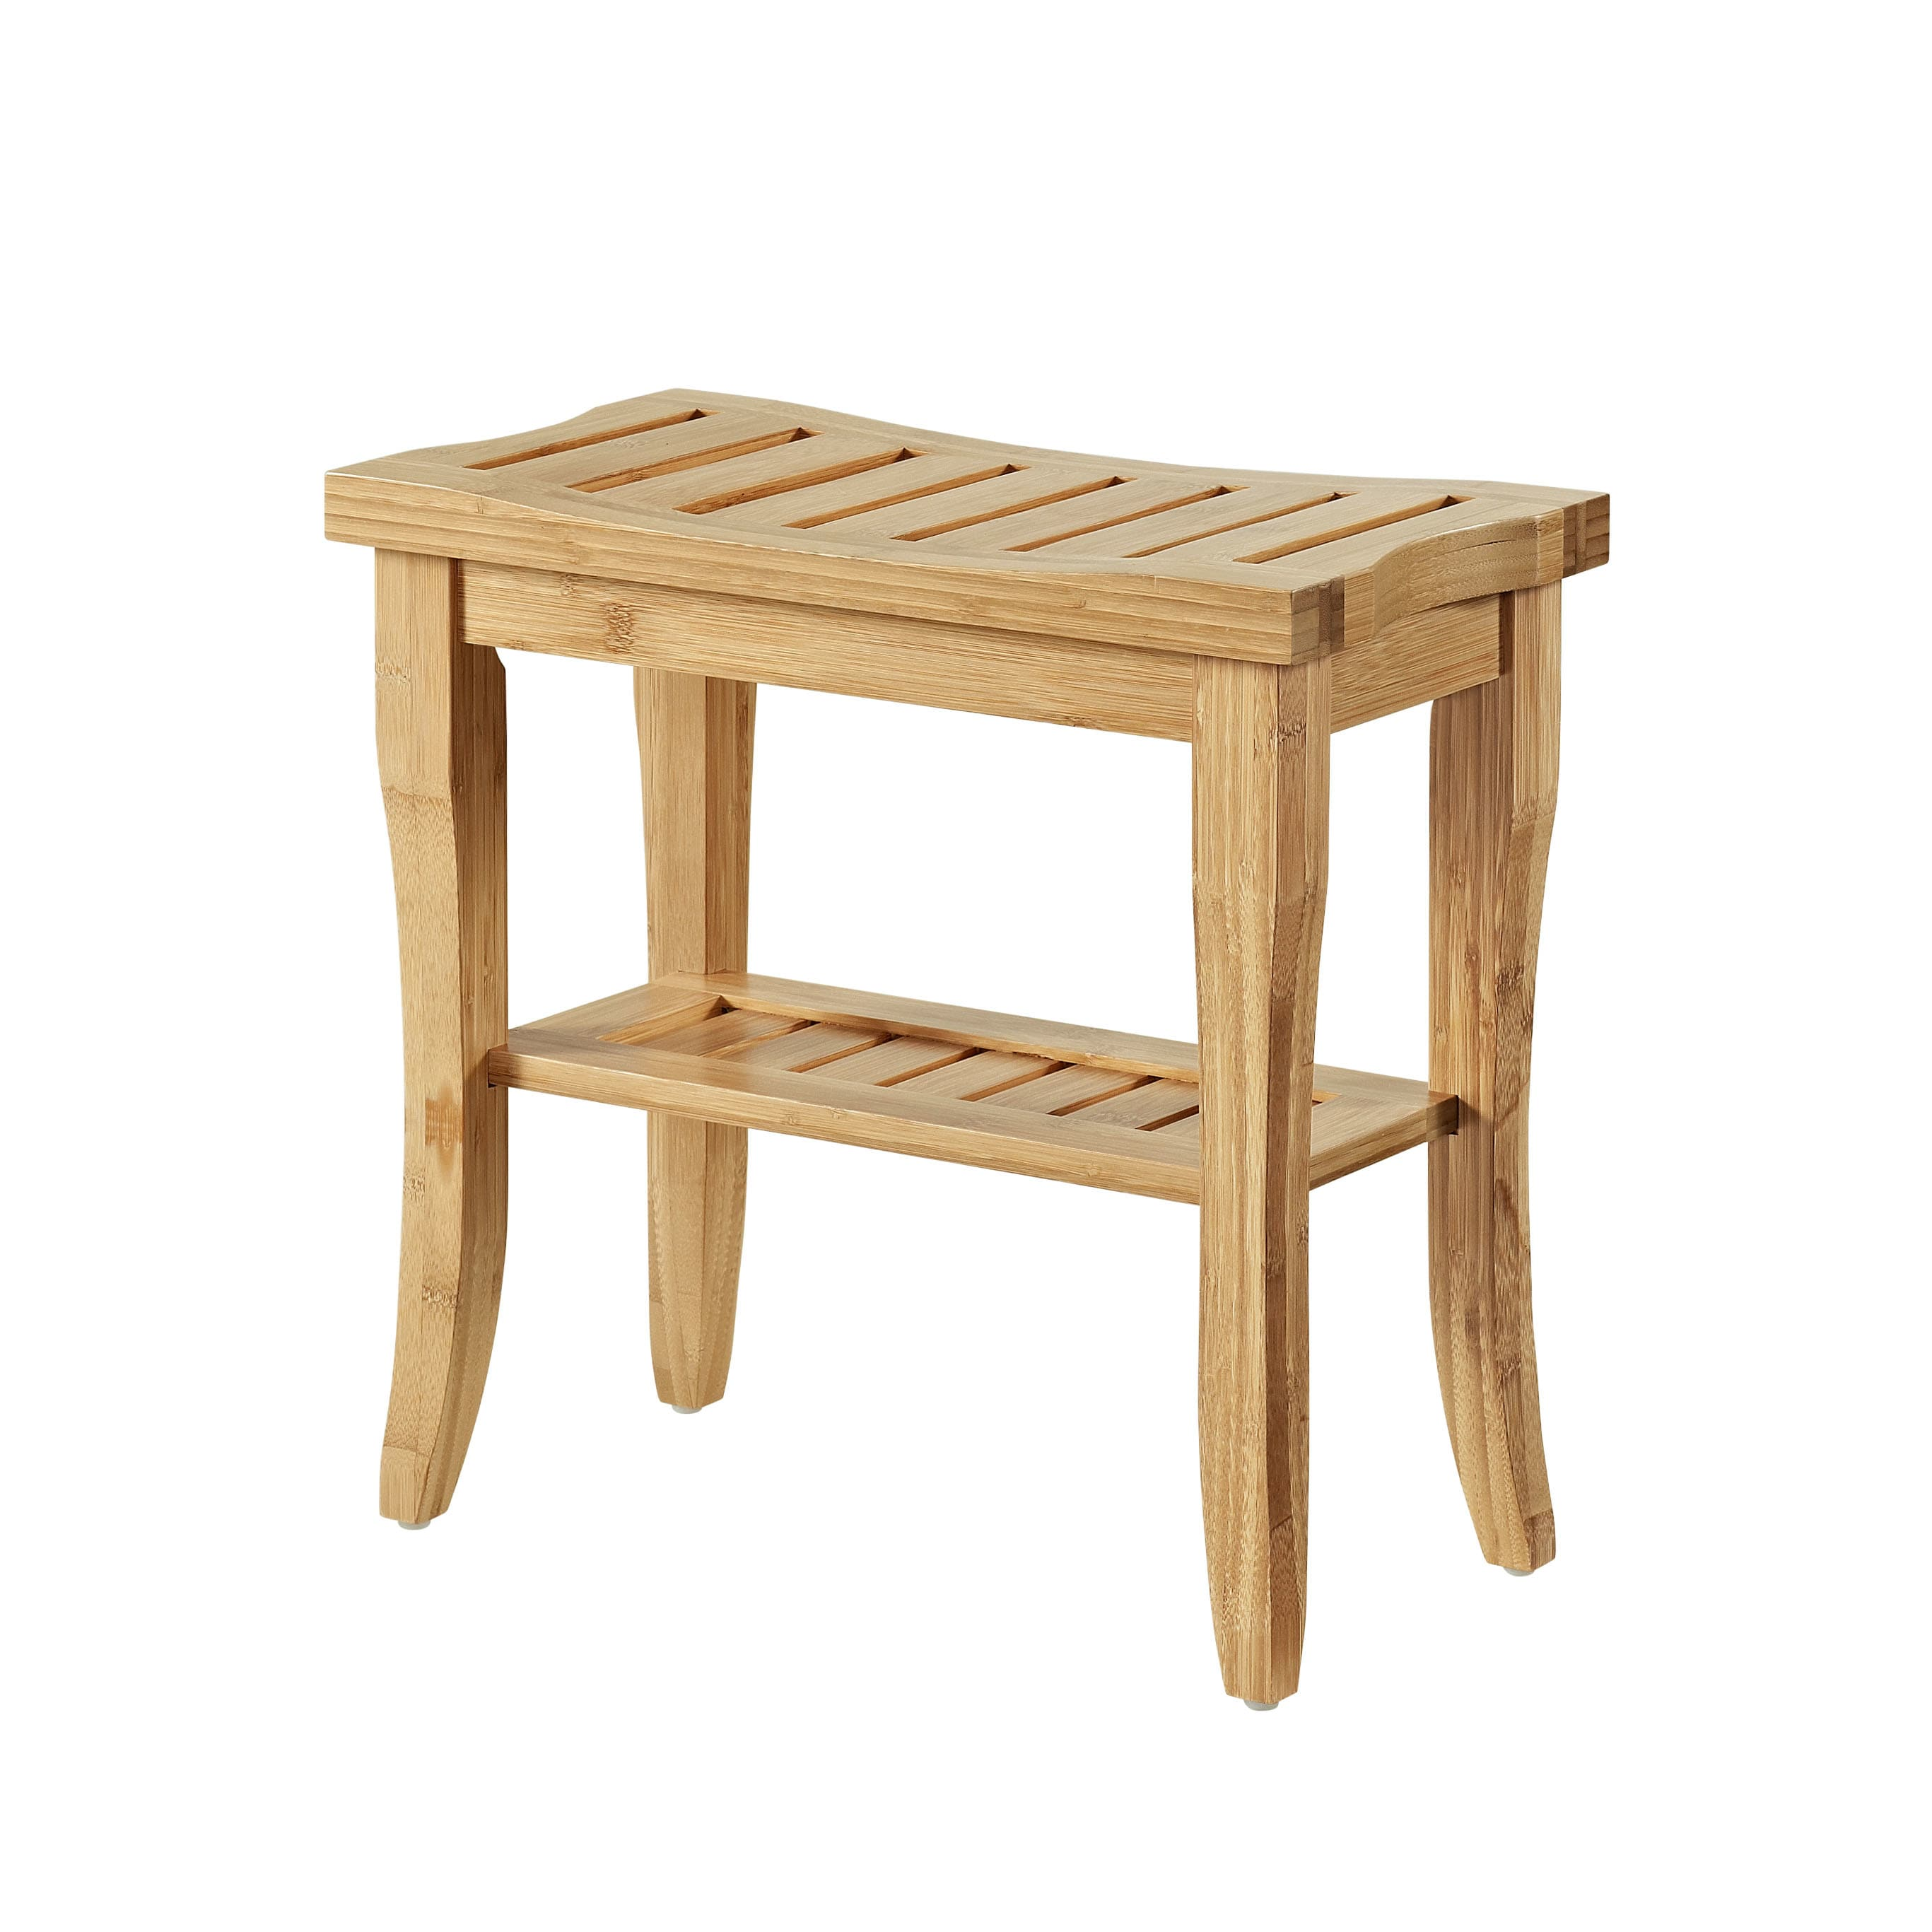 980207nat01u By Linon Home Decor Products Inc Stools Goedekers Com